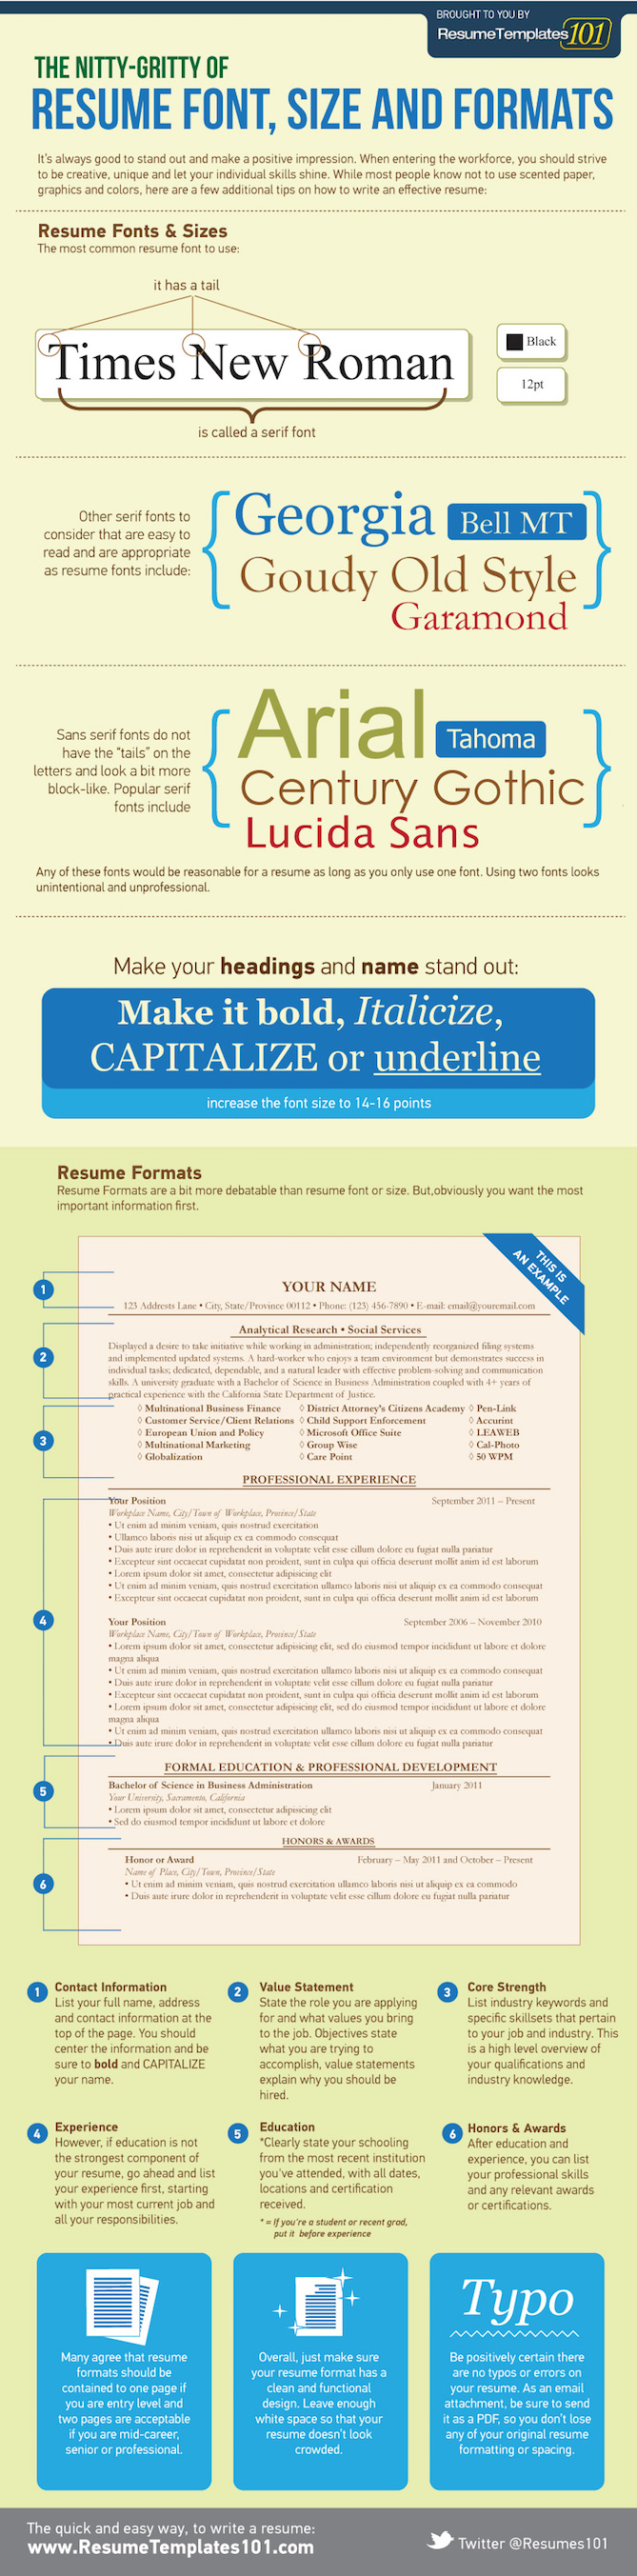 Infographic on how to format a resume using the best font type, font size, headings, and layout.  Resume Format Tips You Need to Know in 2018 [Sample Formats Included] resume formats infographic